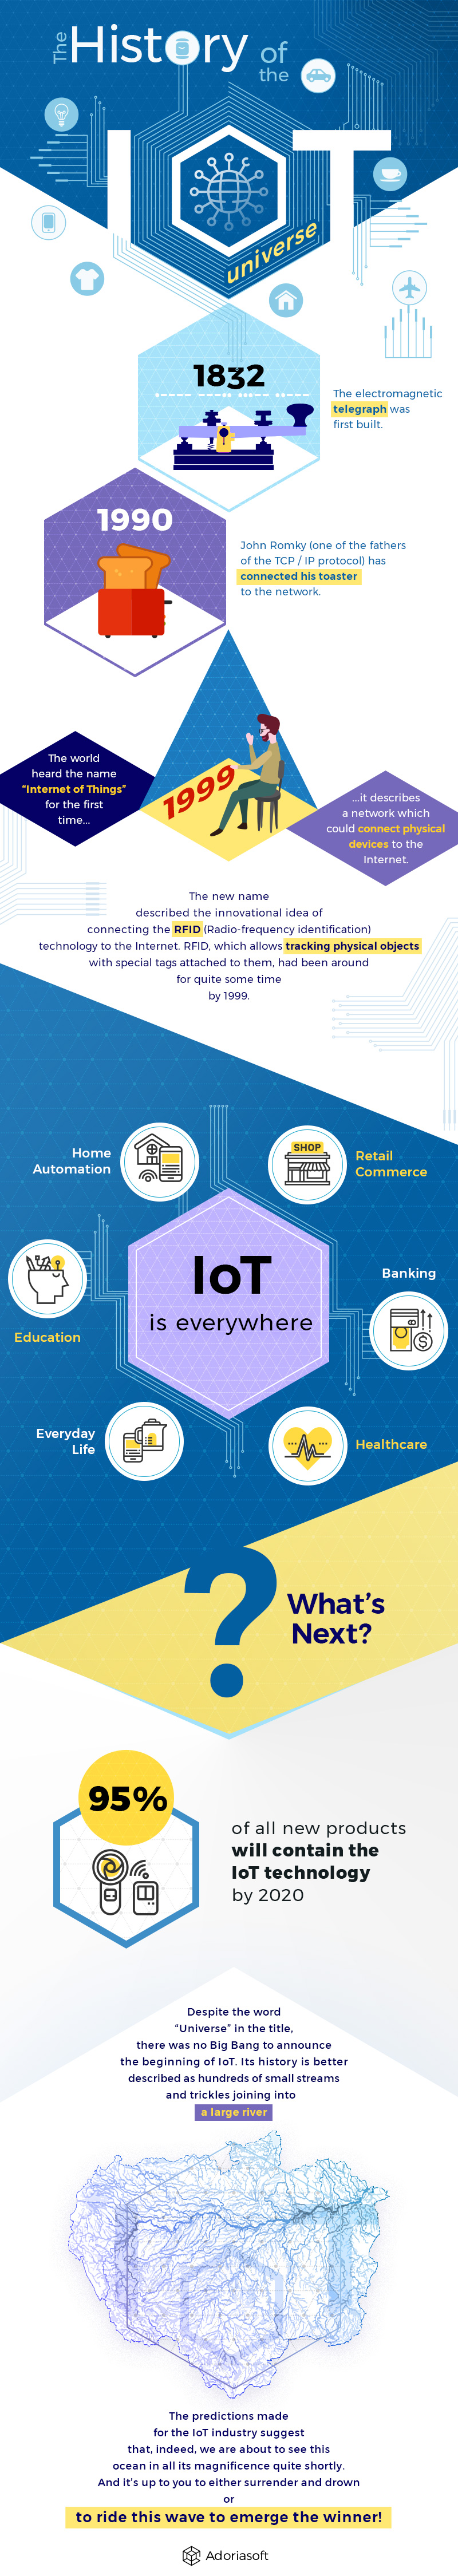 history of IoT infographic